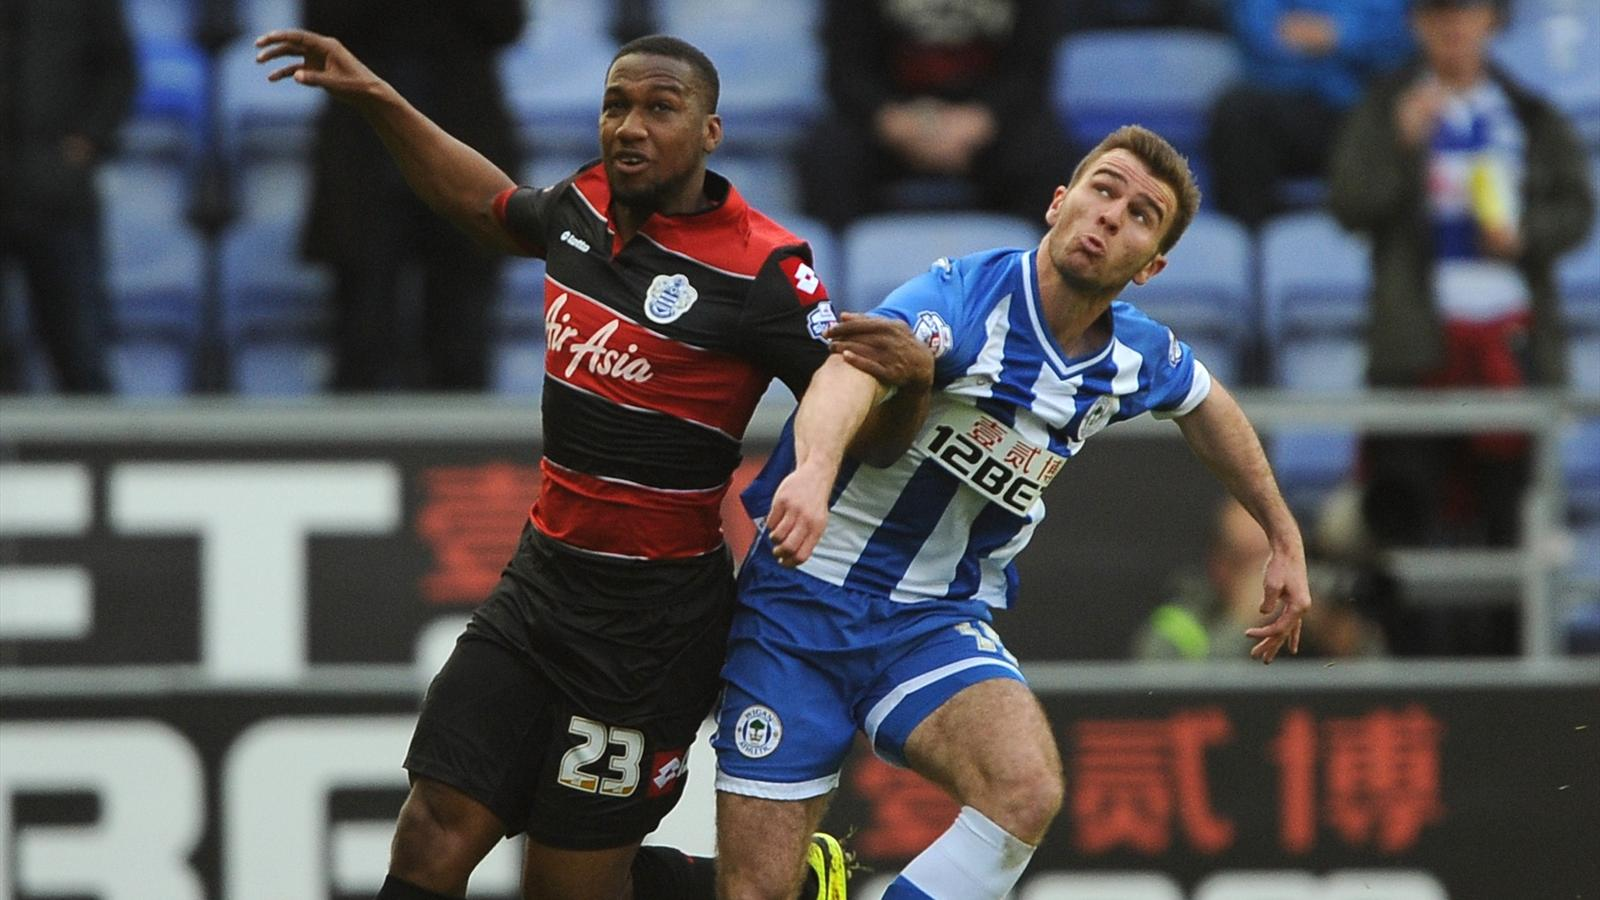 Wigan Athletic's Callum McManaman (right) and Queens Park Rangers' Junior Hoilett (left) battle for the ball. (PA)